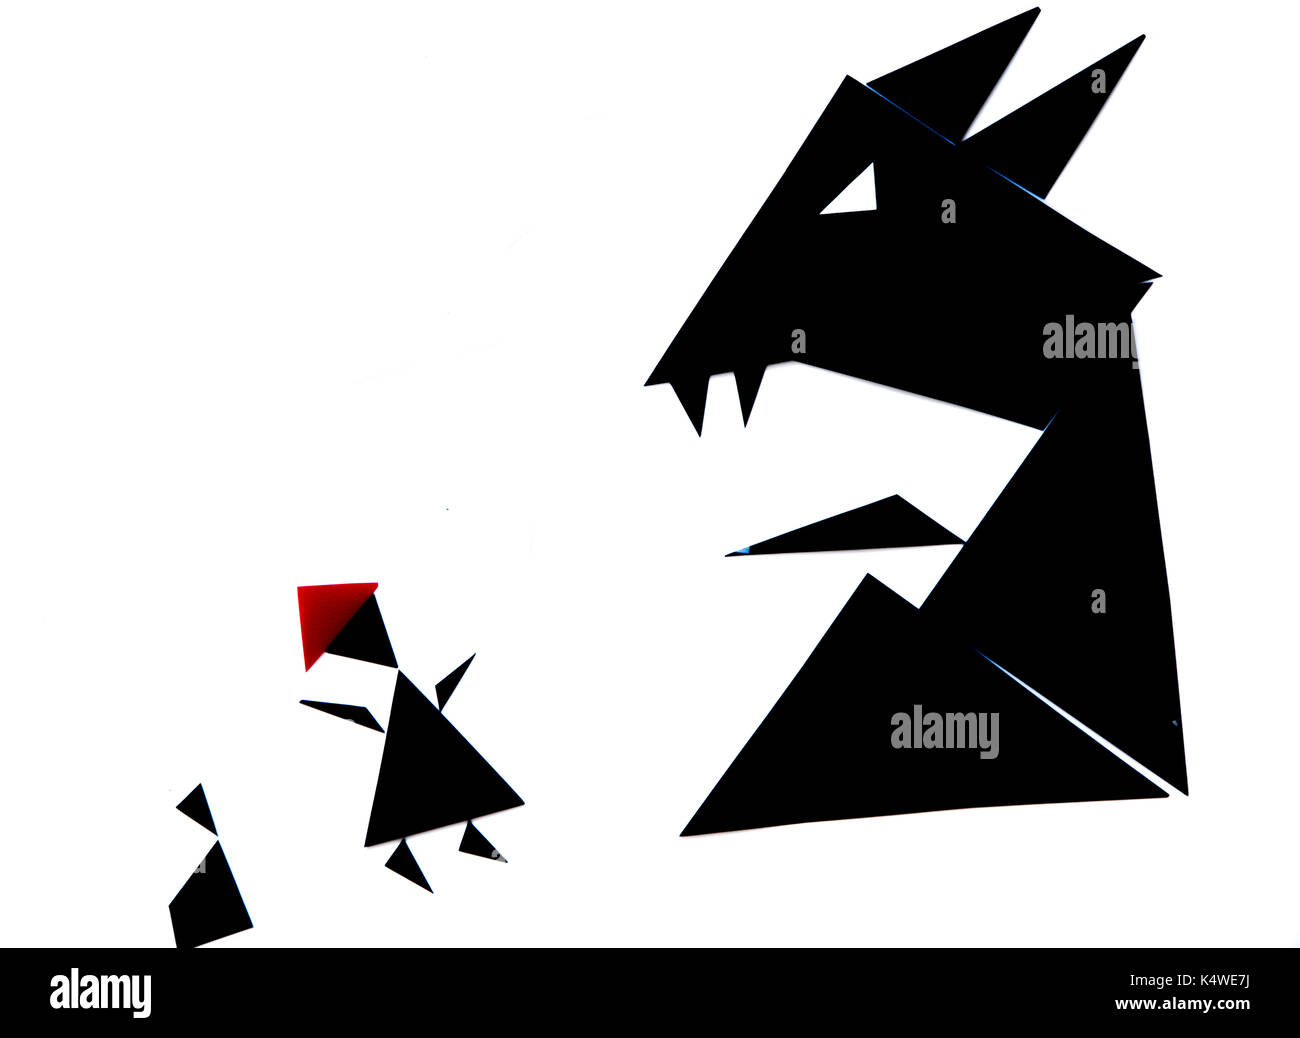 An abstract illustration of the red riding hood story with black and red triangles on a white background - Stock Image